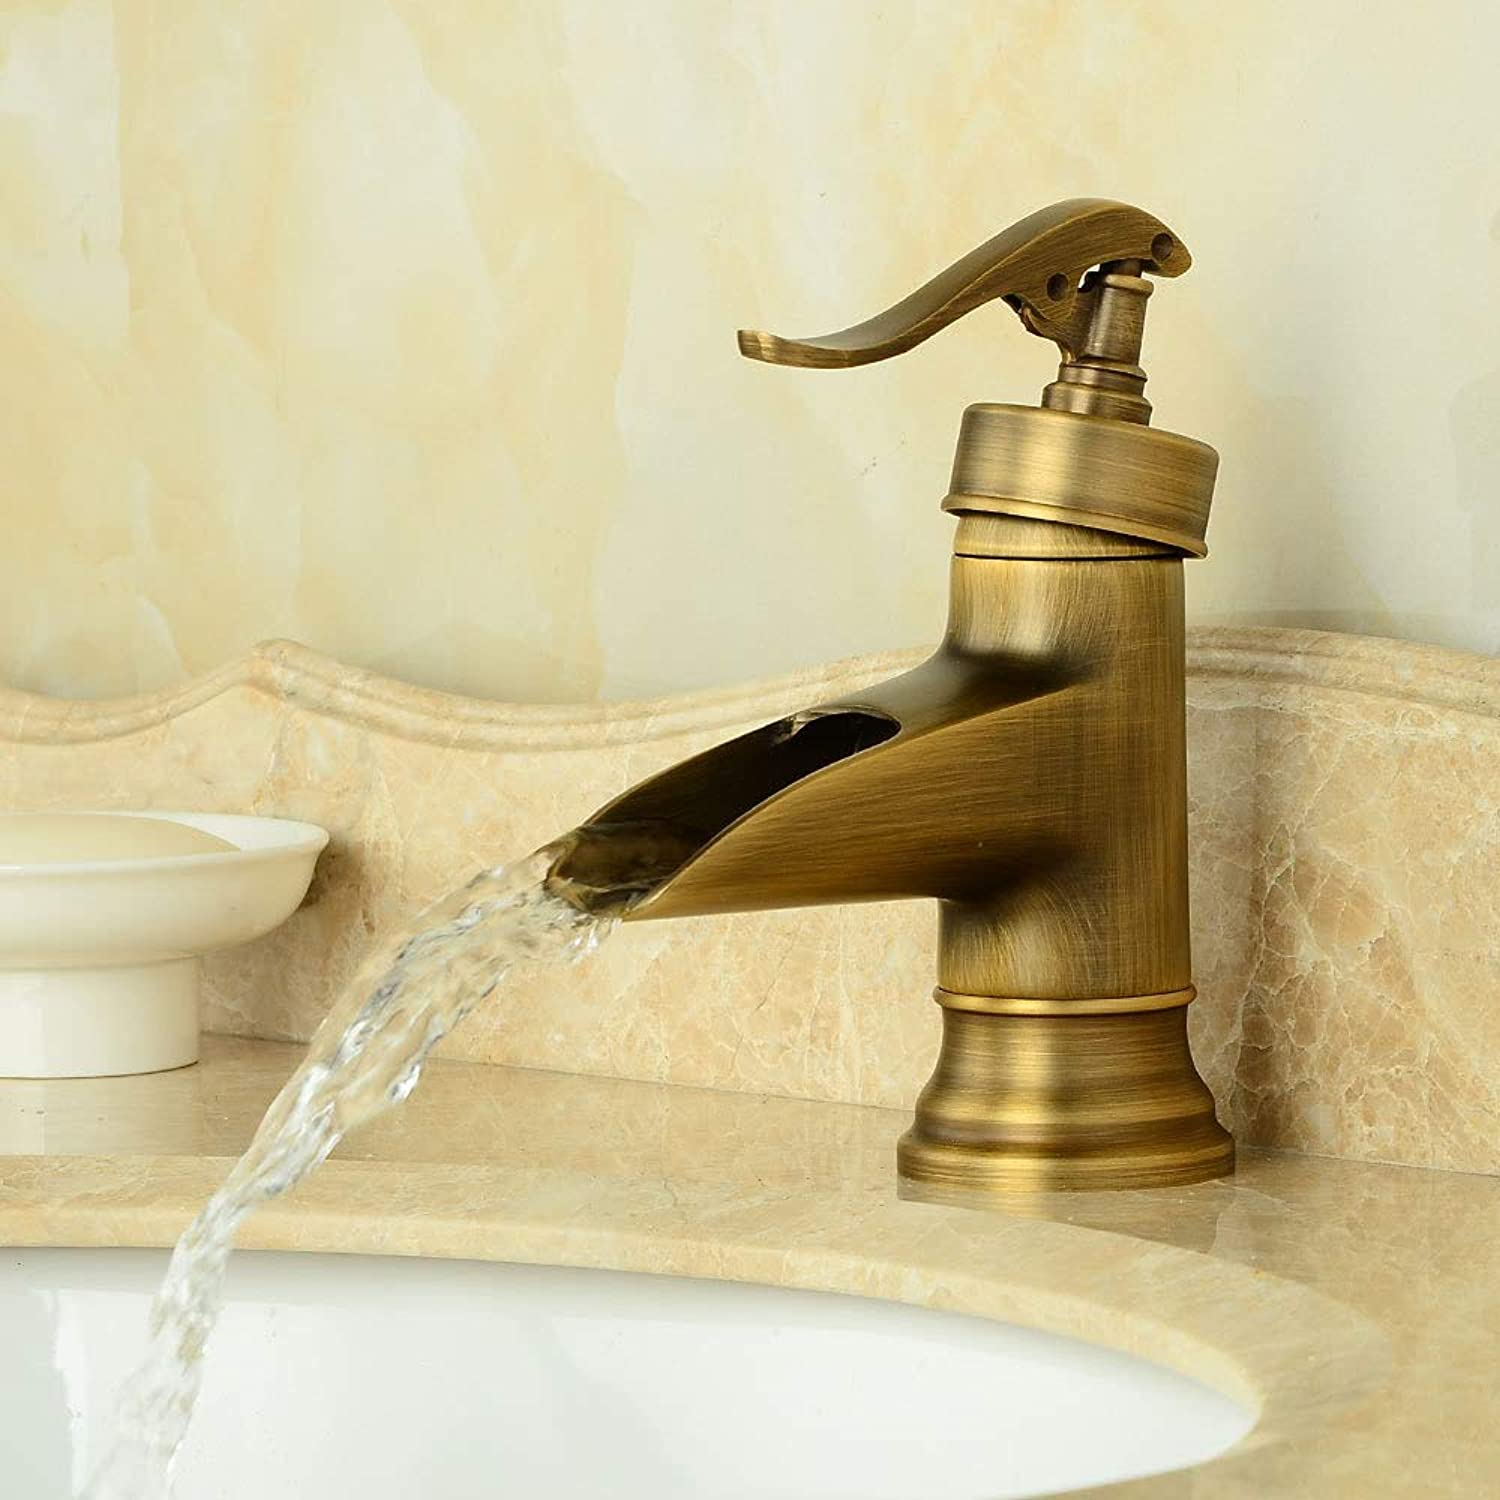 Bathroom Sink Basin Lever Mixer Tap Face Basin Cold and Hot Water Faucet Face Basin Cold and Hot Water Faucet Bathroom Countertop Basin Faucet Retro Faucet